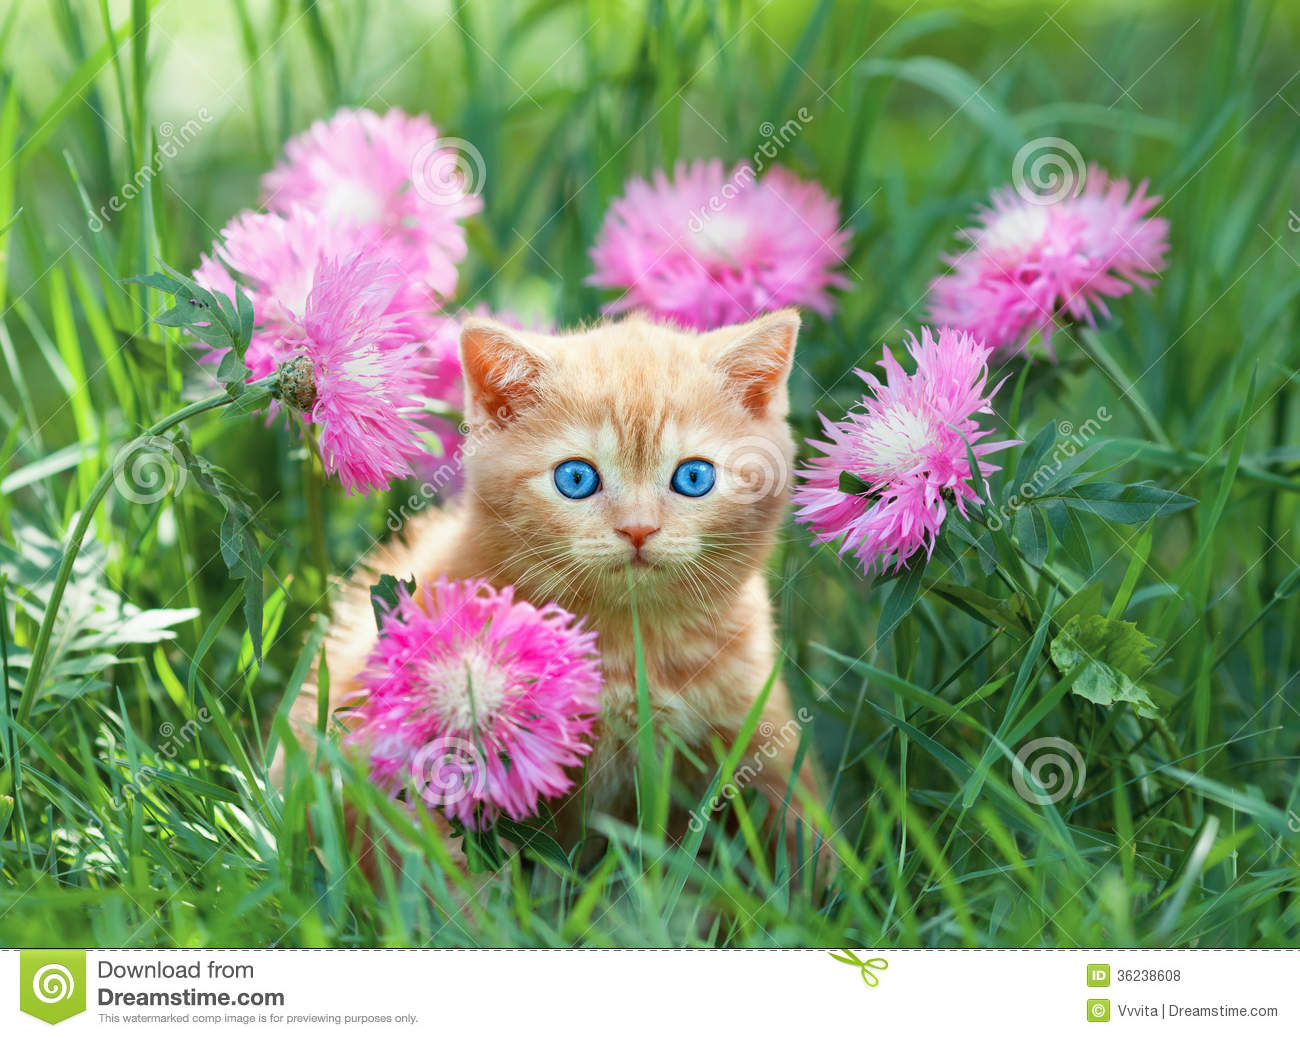 Little Kitten Sitting In Flowers Stock Photo - Image: 36238608